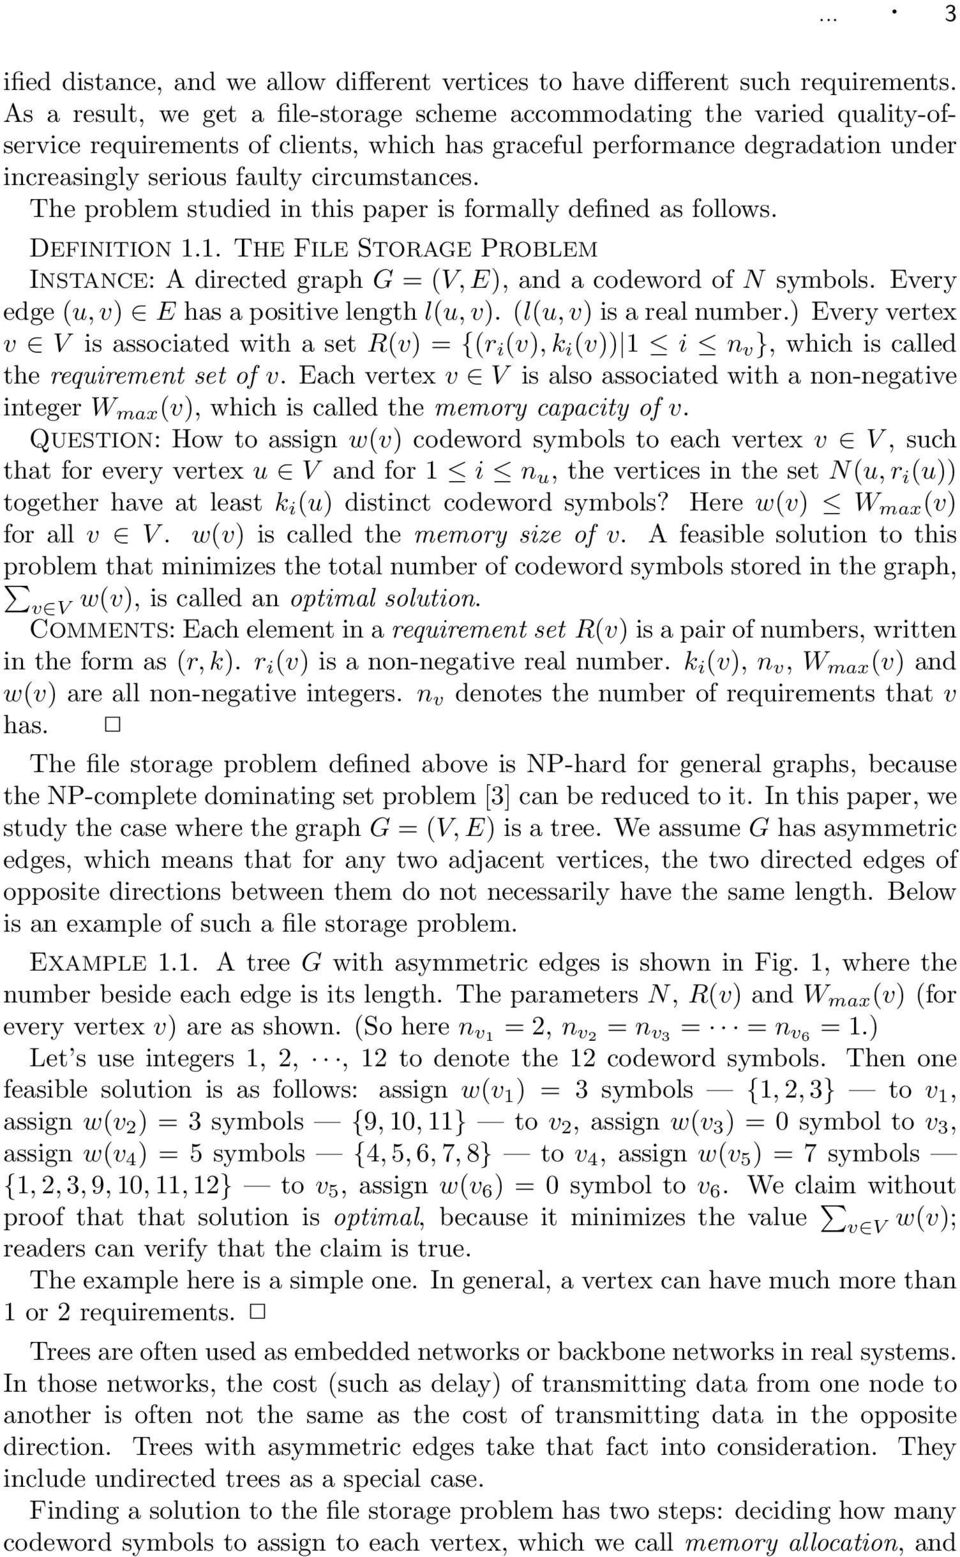 circumstances. The problem studied in this paper is formally defined as follows. DEFINITION 1.1. THE FILE STORAGE PROBLEM INSTANCE: A directed graph G = (V, E), and a codeword of N symbols.